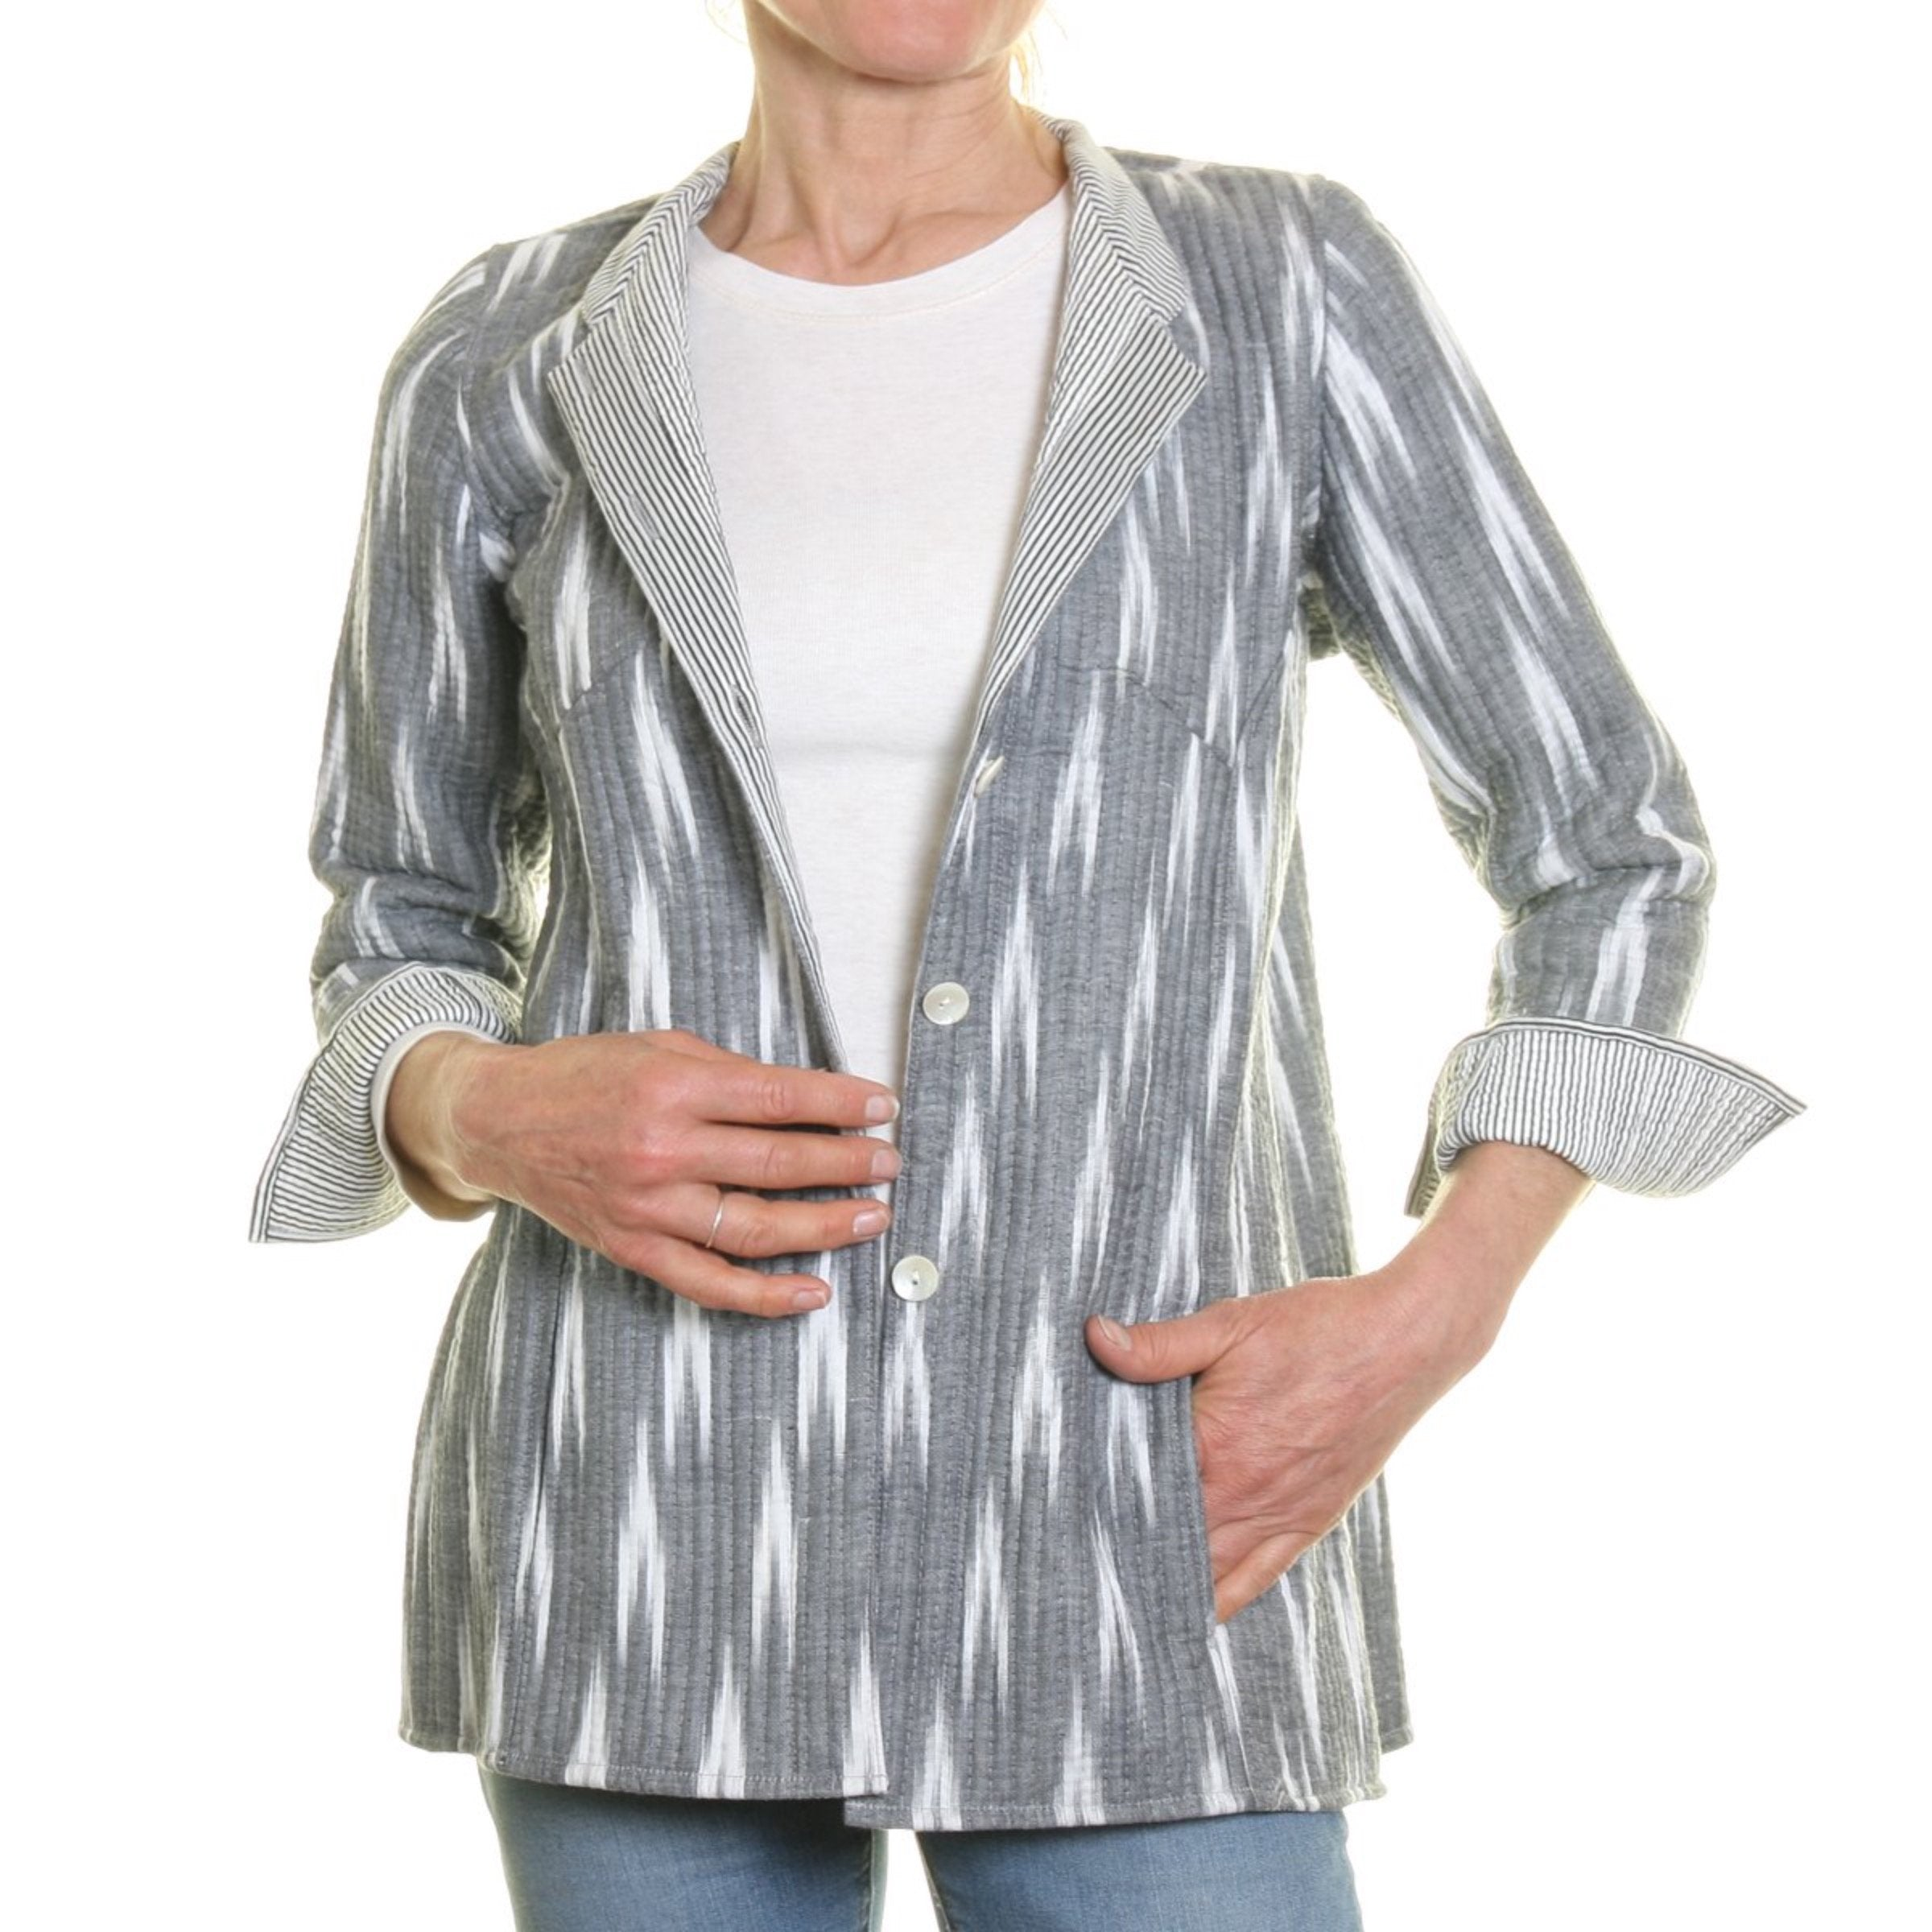 Cotton Quilted Opera Jacket - Grey and White with Striped Lining